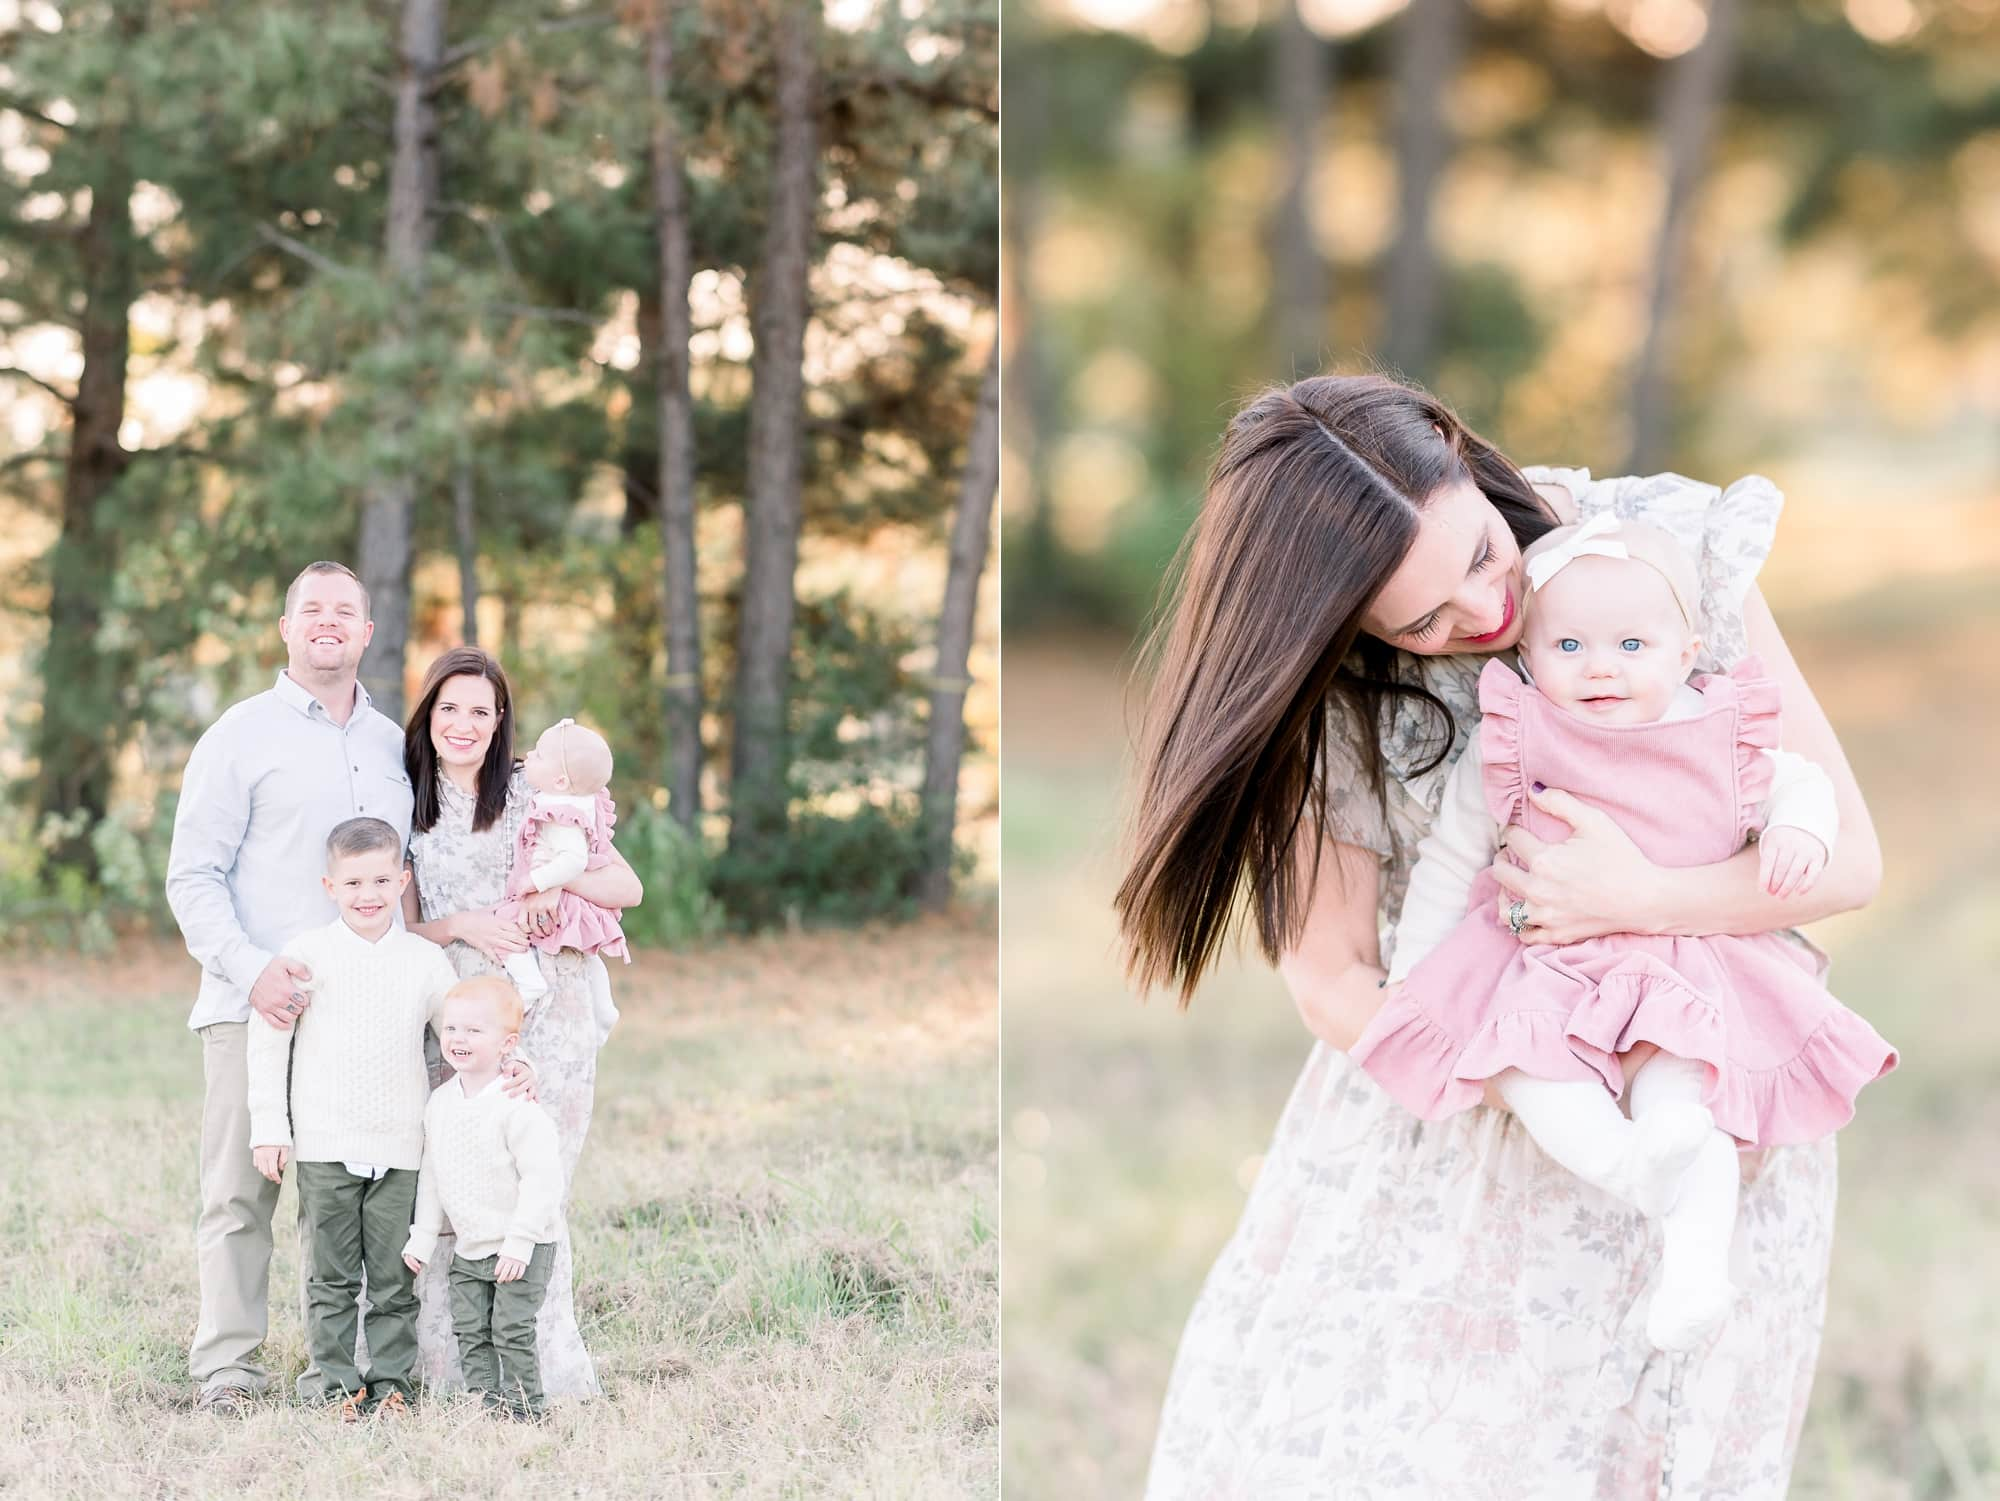 Sweet family photos in a field outside of Dallas, TX. Photos by Aimee Hamilton Photography.